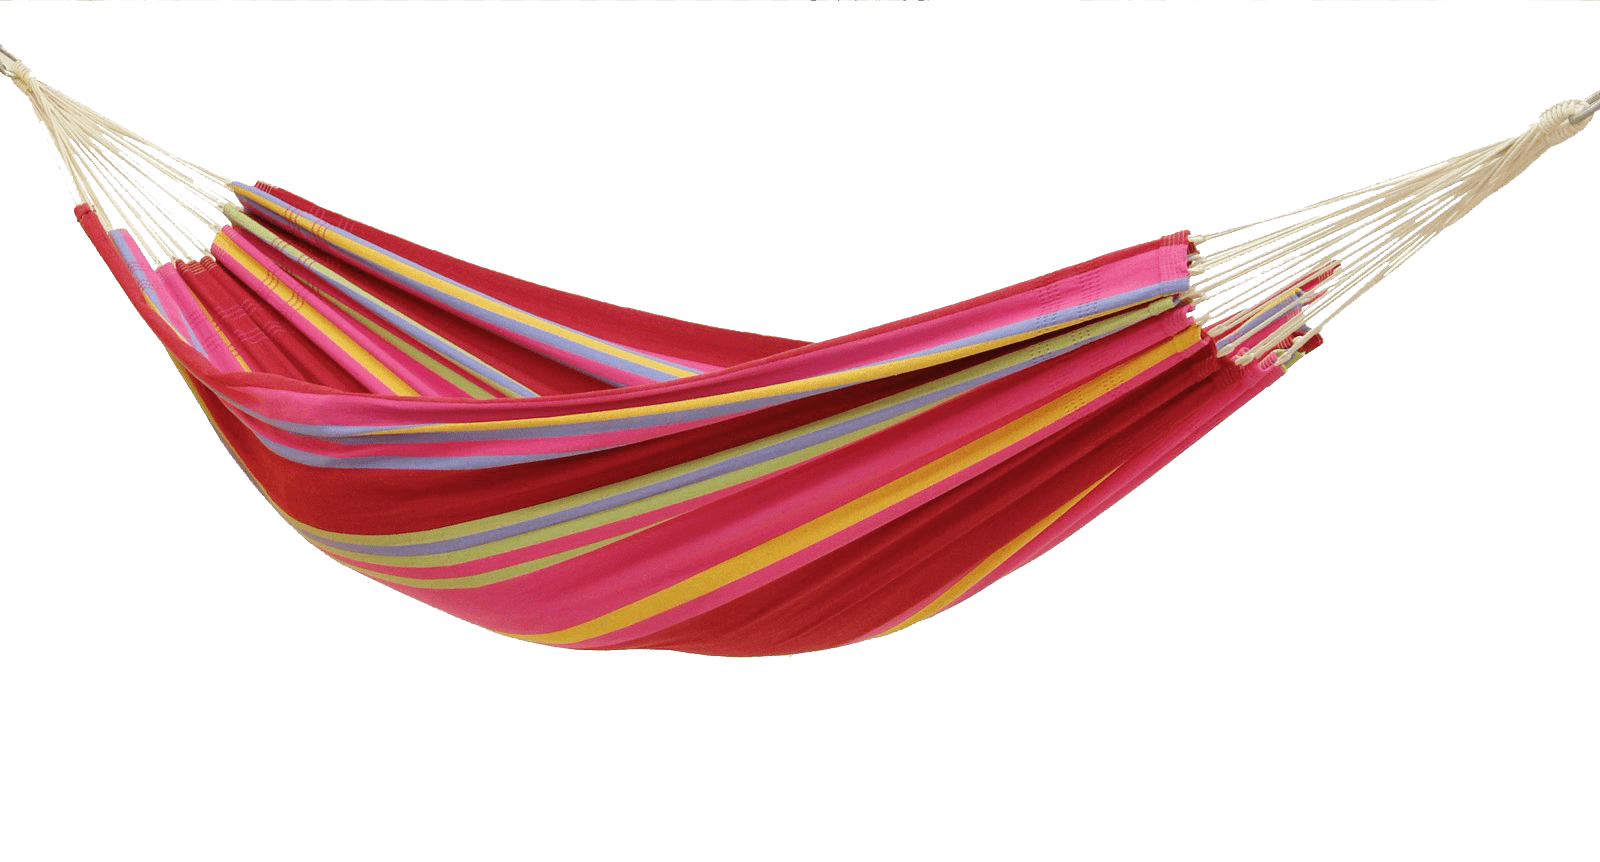 Hammock clipart transparent. Colourful png stickpng